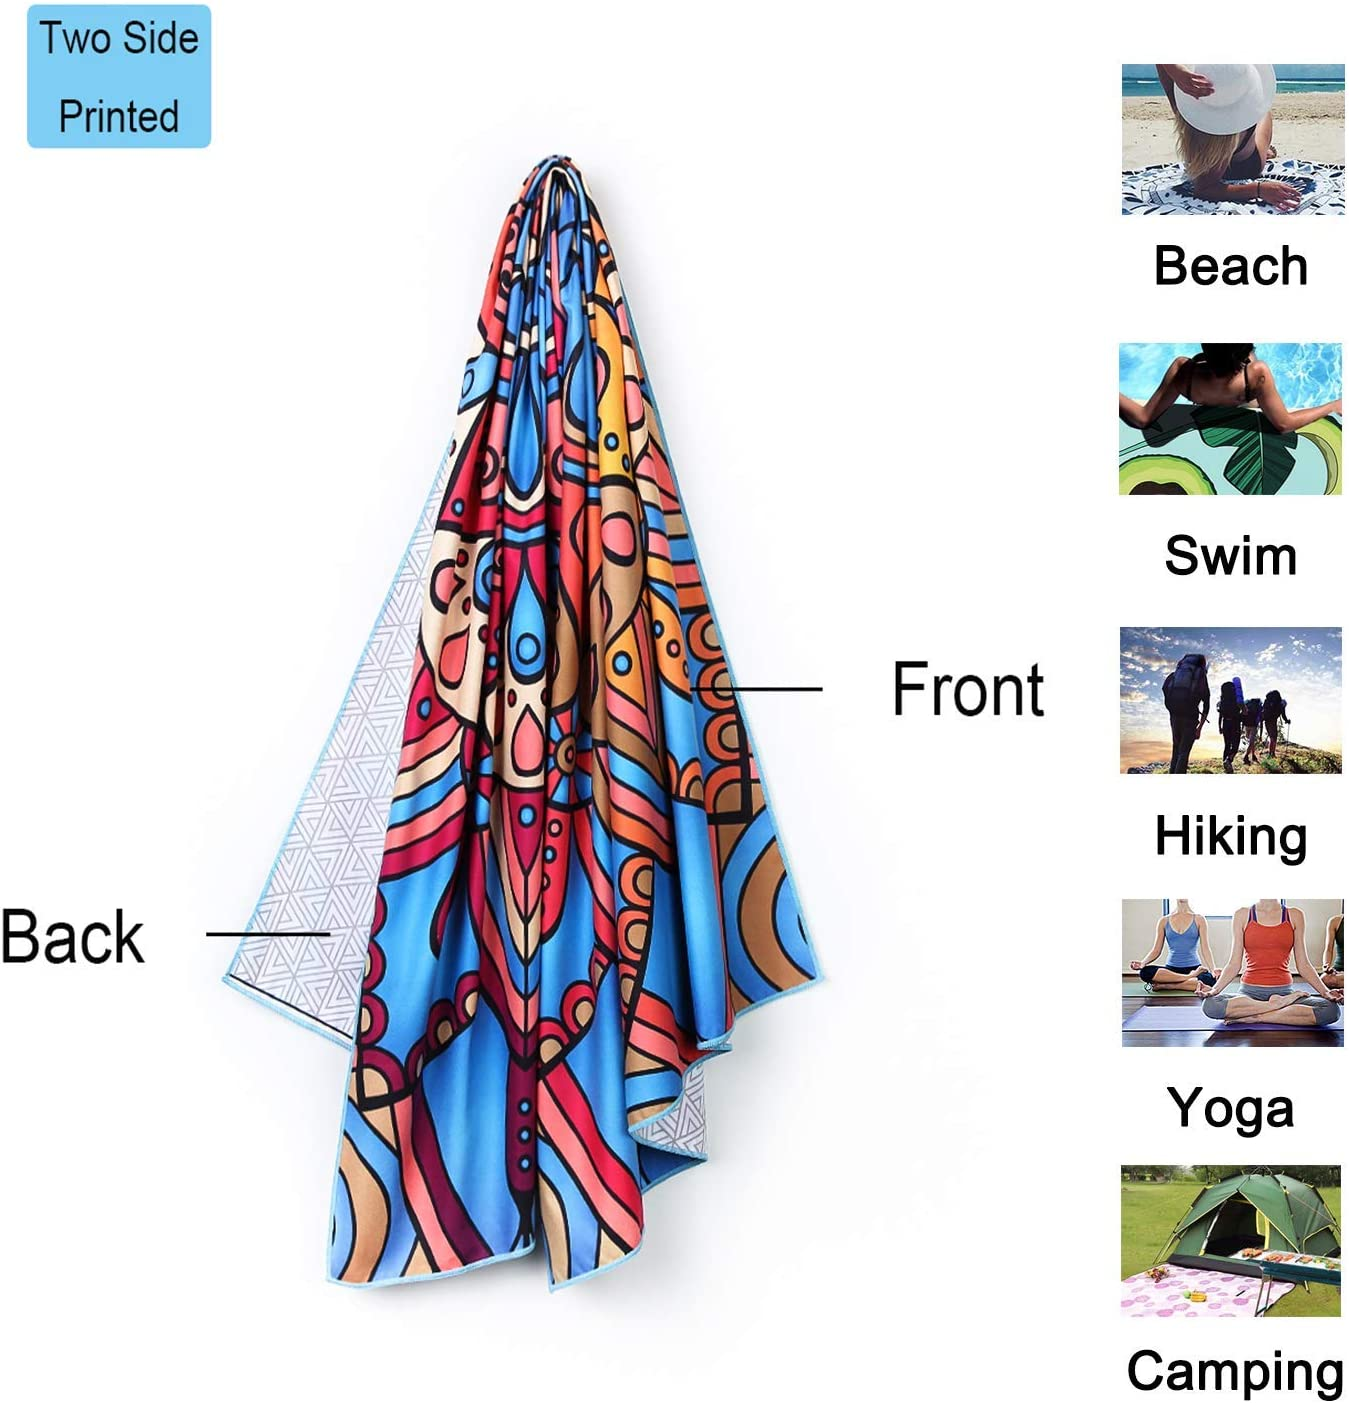 Lightweight Quick Dry for Swim Pool Outdoors Sand Free Beach Mat Camping Water Sports NovForth Microfiber Beach Towel Oversized Camping 63x31 Compact Beach Blanket Travel